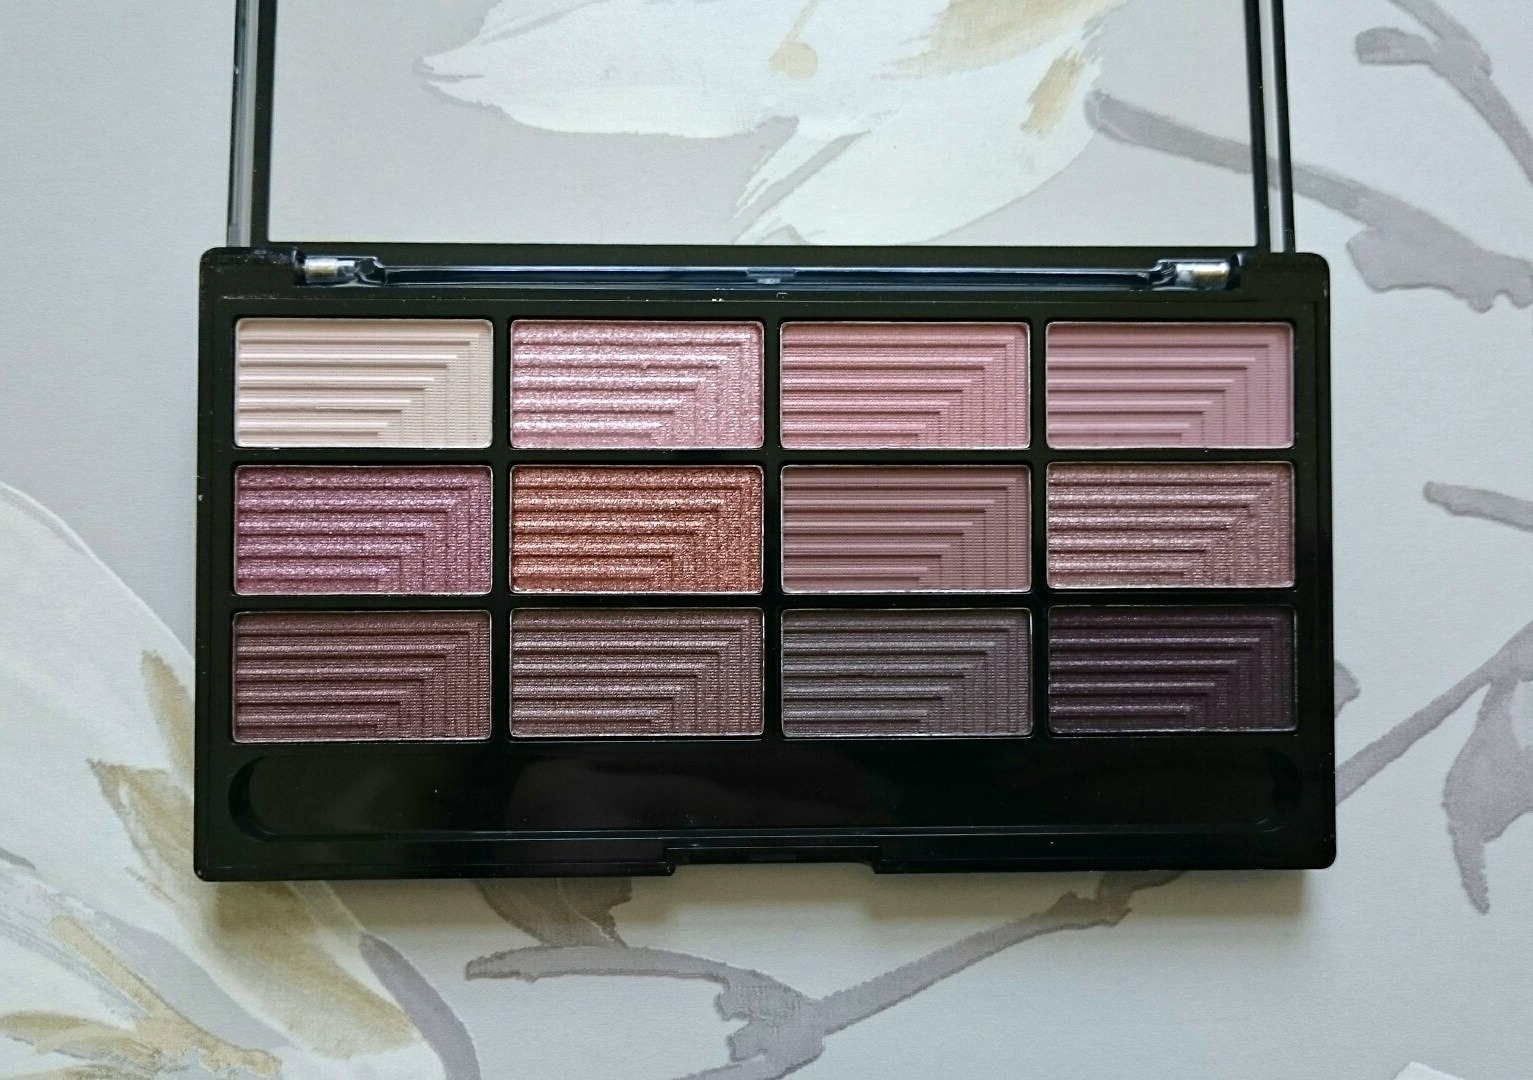 Freedom Makeup Audacious 3 palette